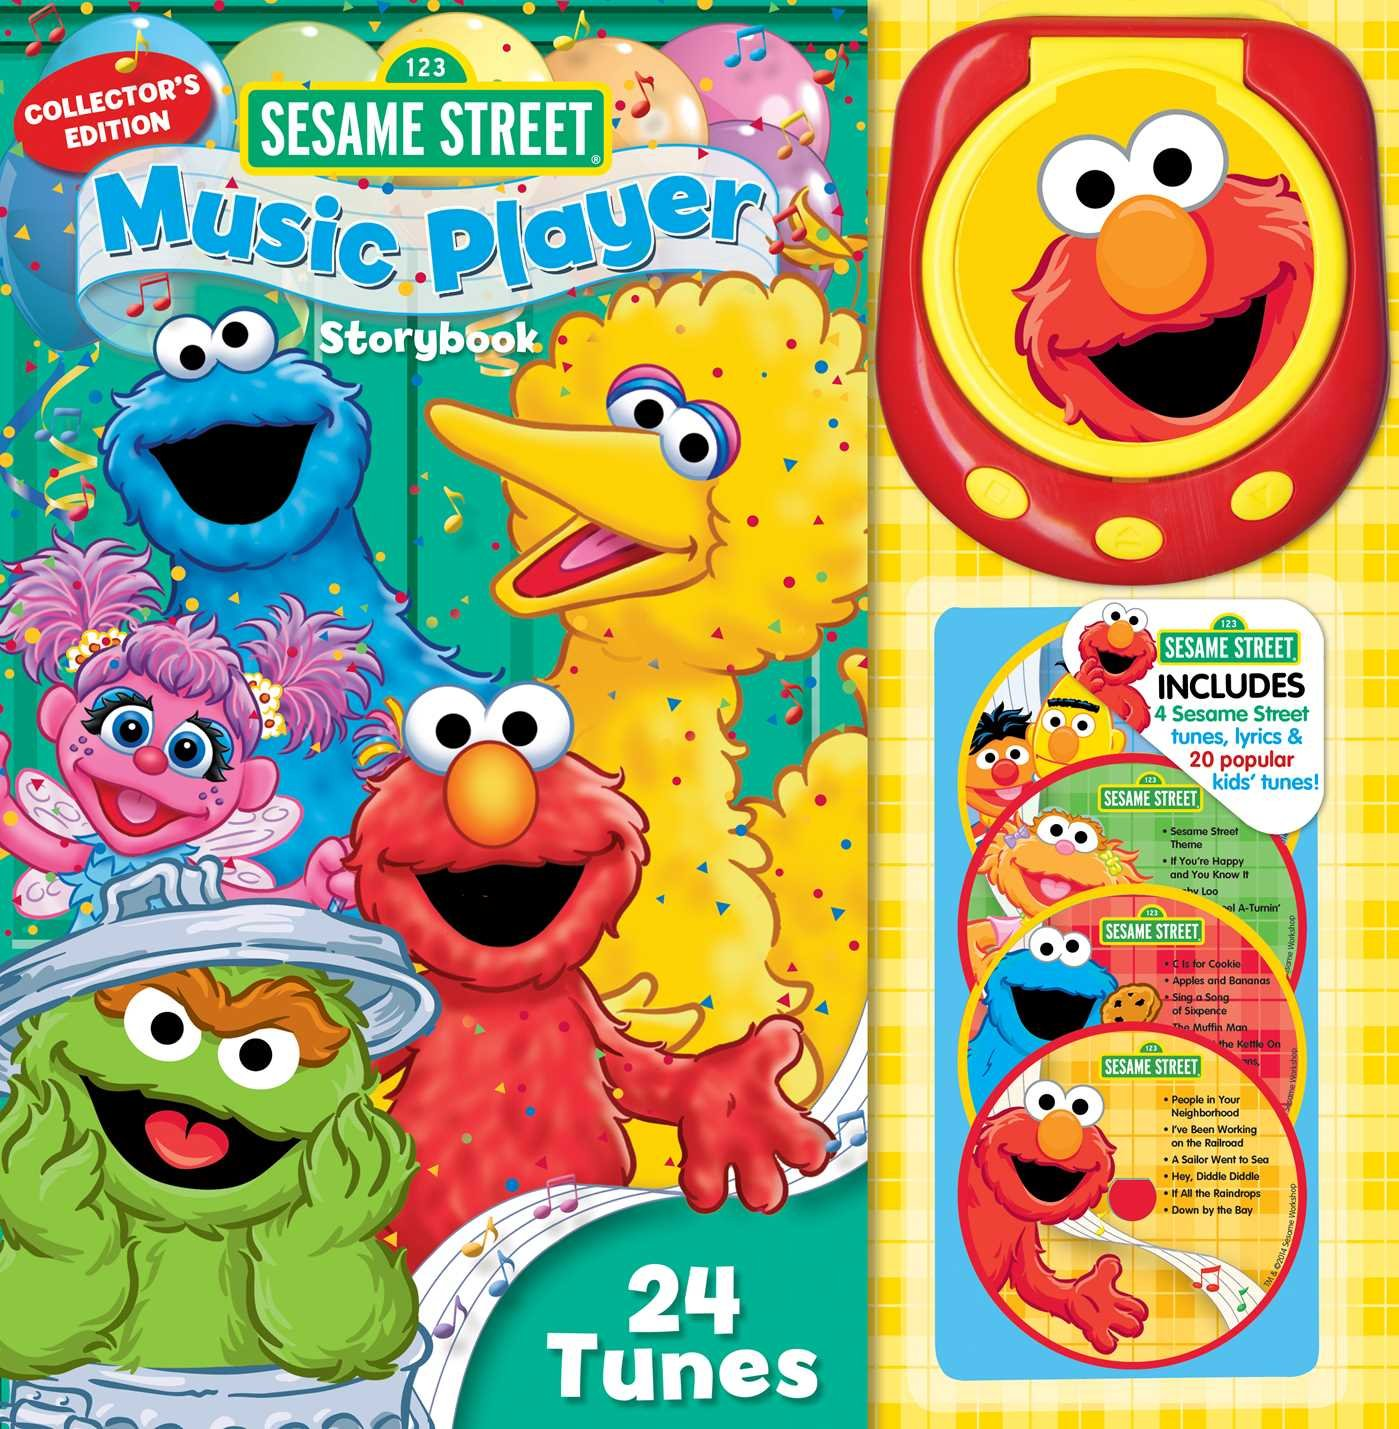 Download Sesame Street Music Player Storybook: Collector's Edition pdf